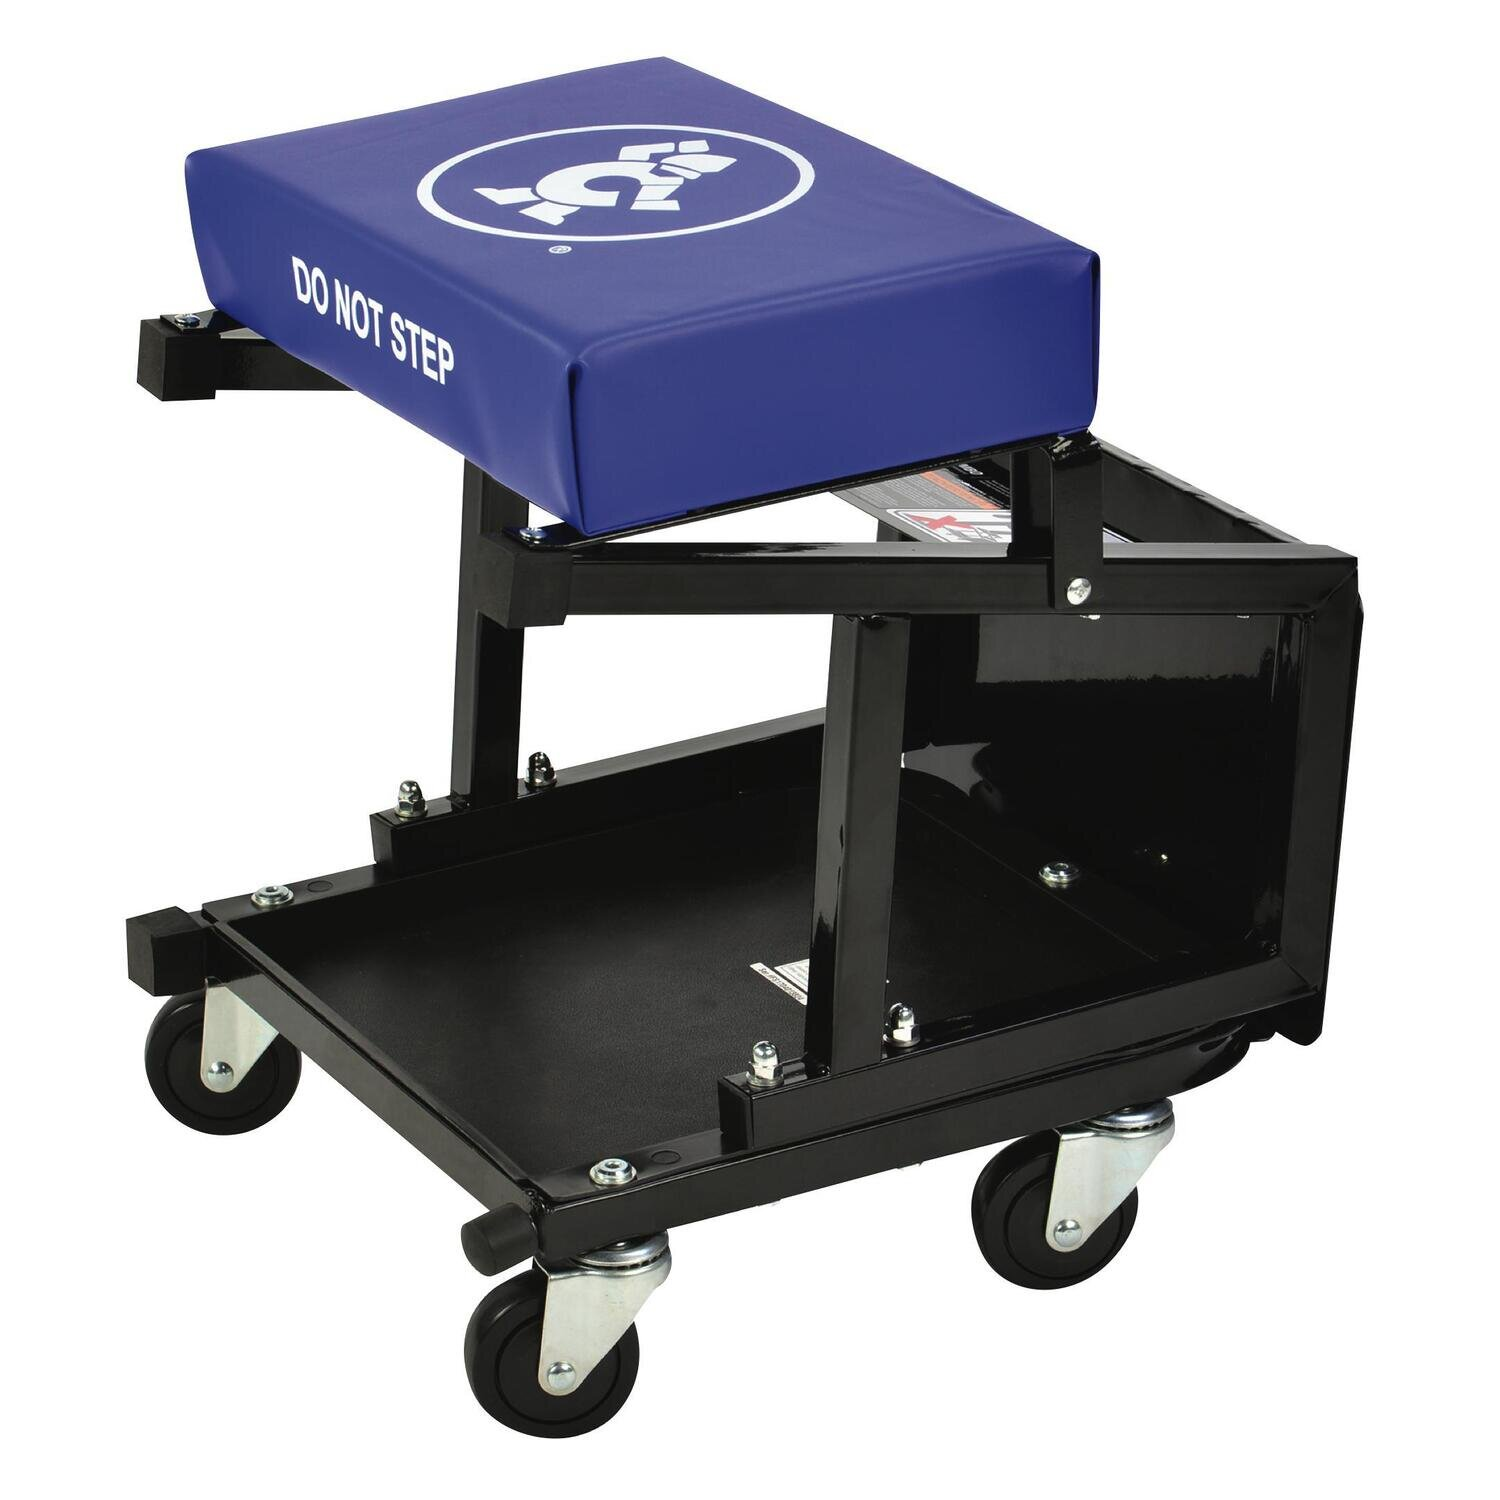 HEW91305CW - 2-in-1 Step Stool/Seat